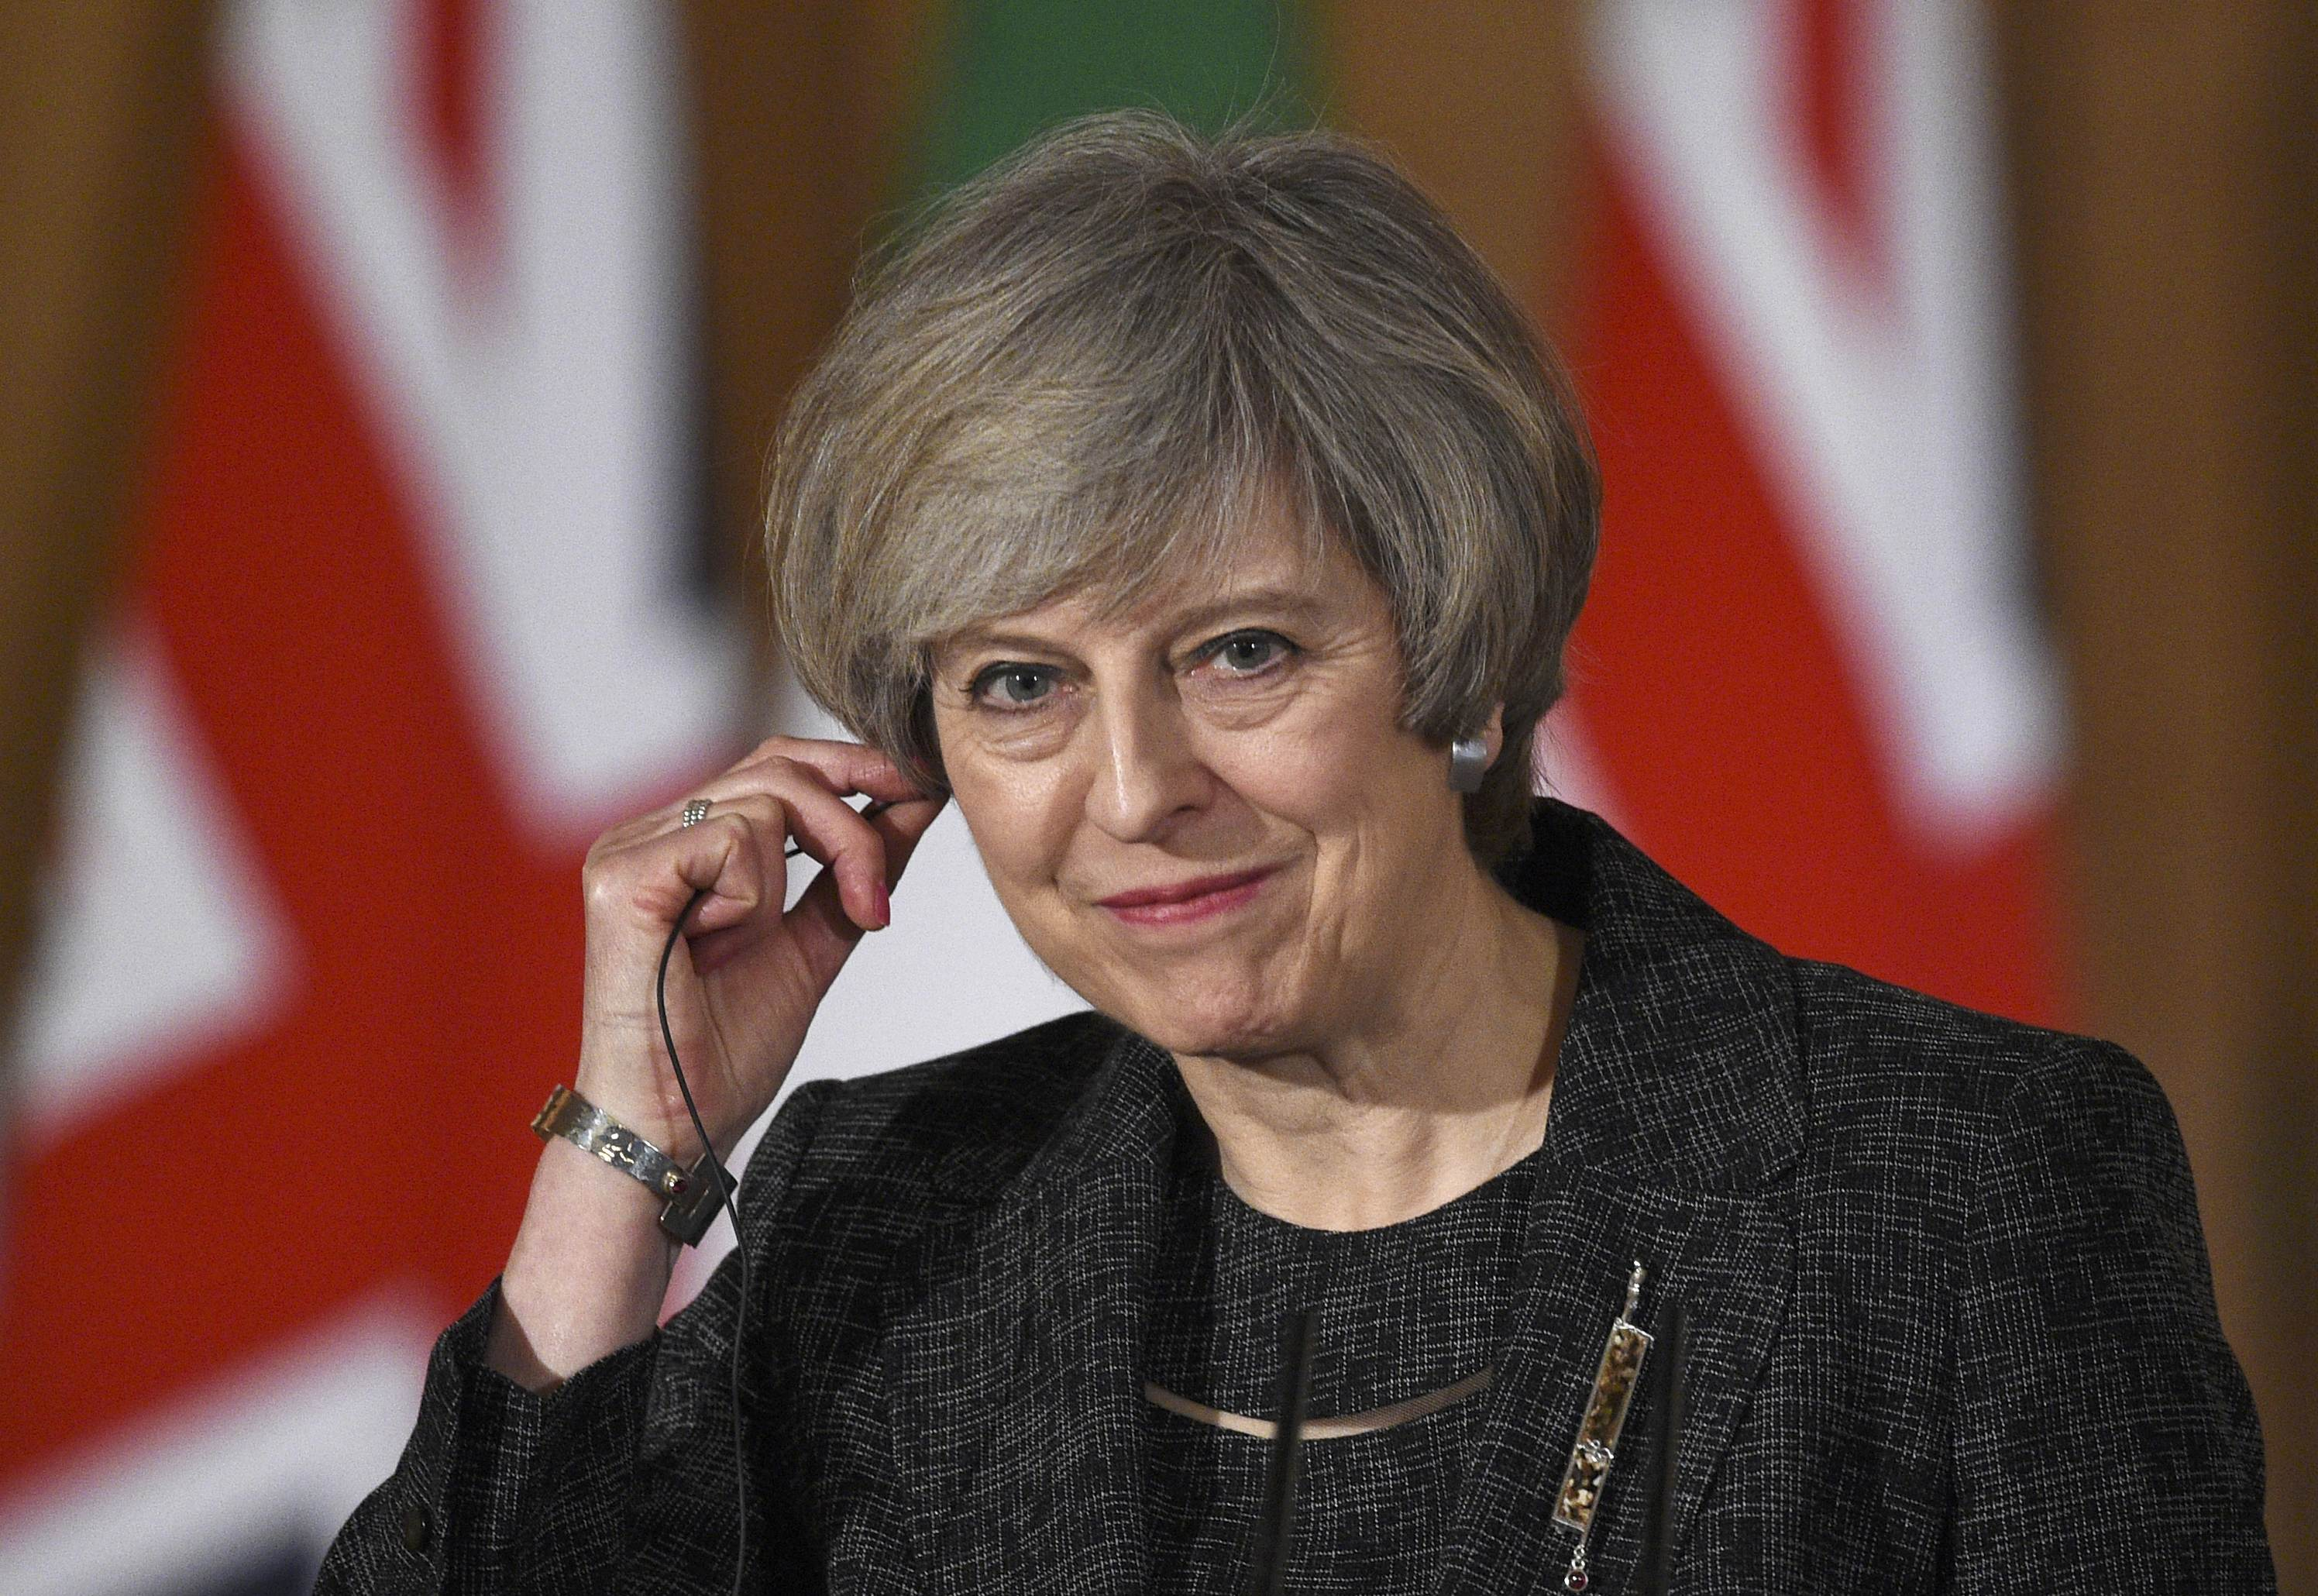 Theresa May - Paolo Gentiloni meeting in London